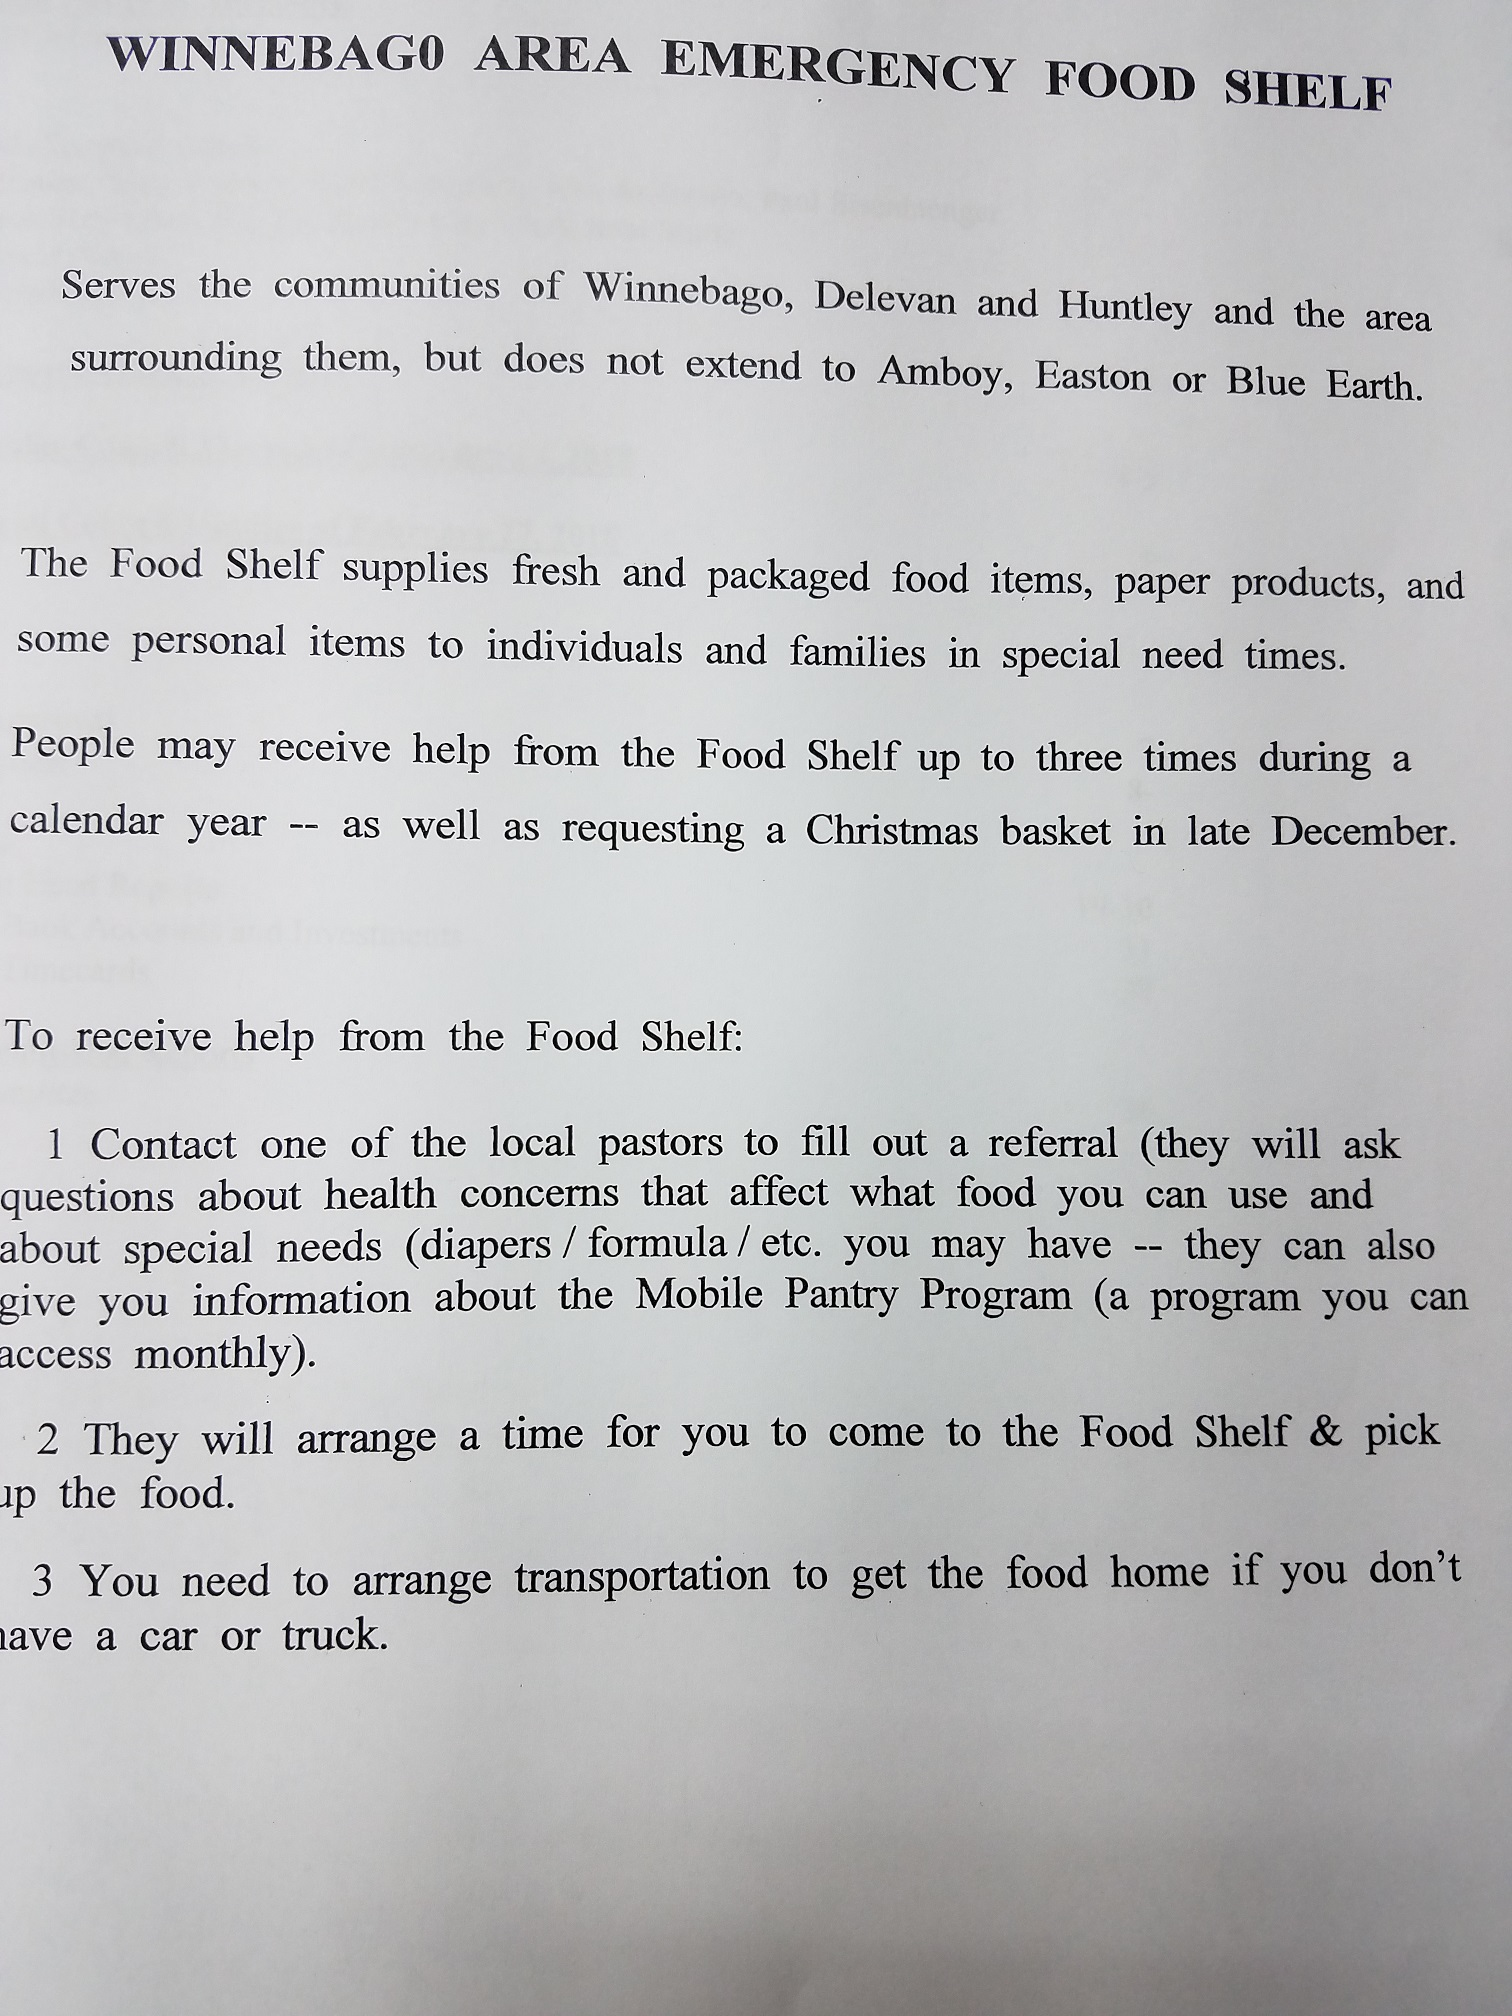 Winneabgo Area Food Shelf information